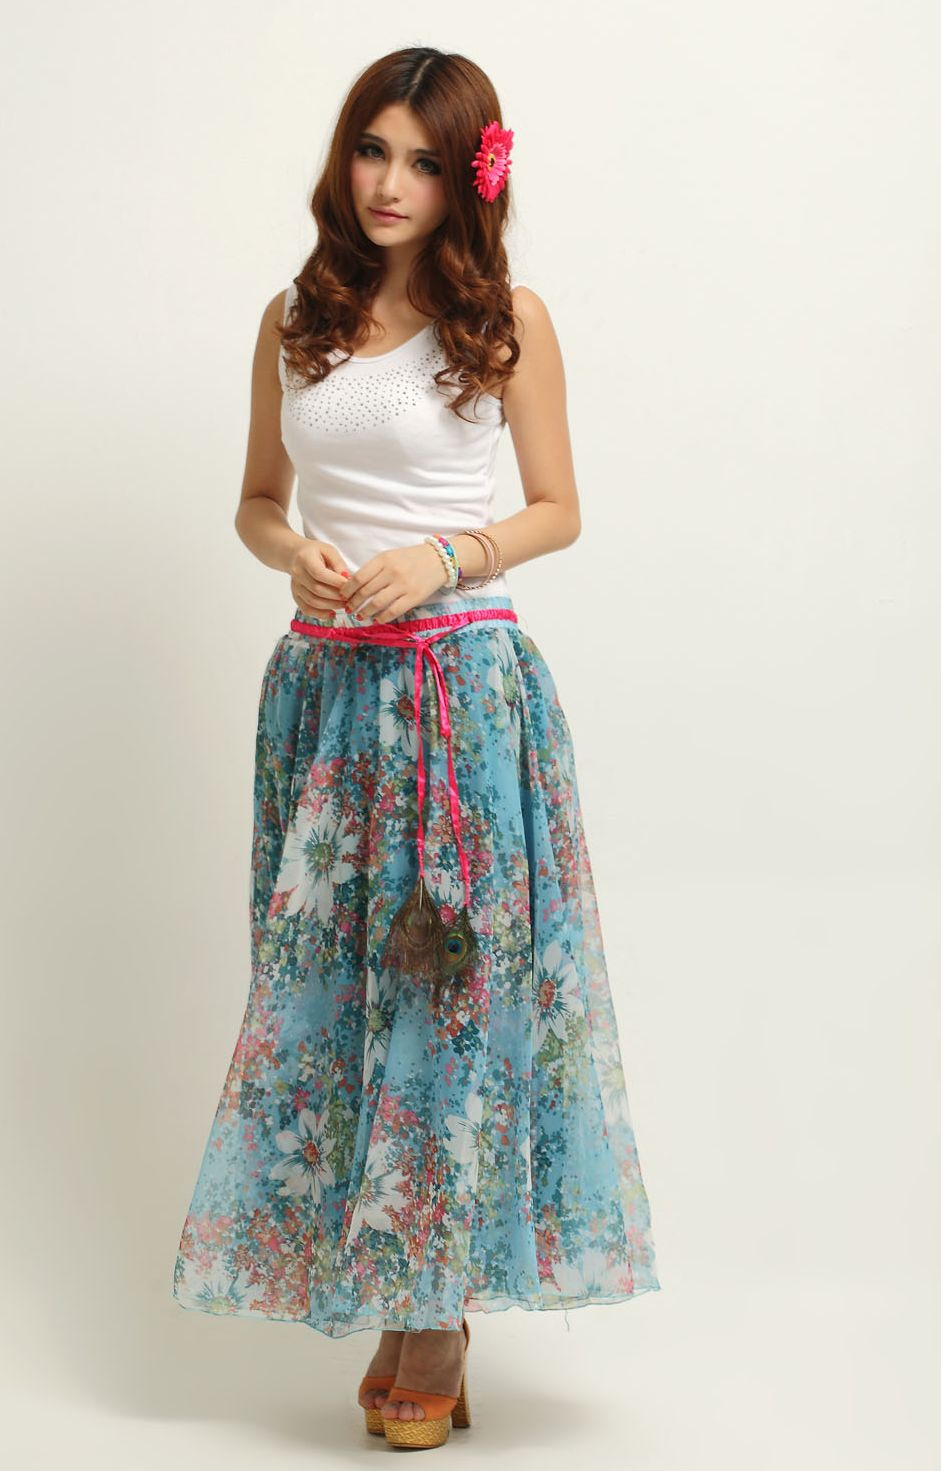 Stylish Summer Skirts For Women To Beat The Heat - Latest Fashion ...